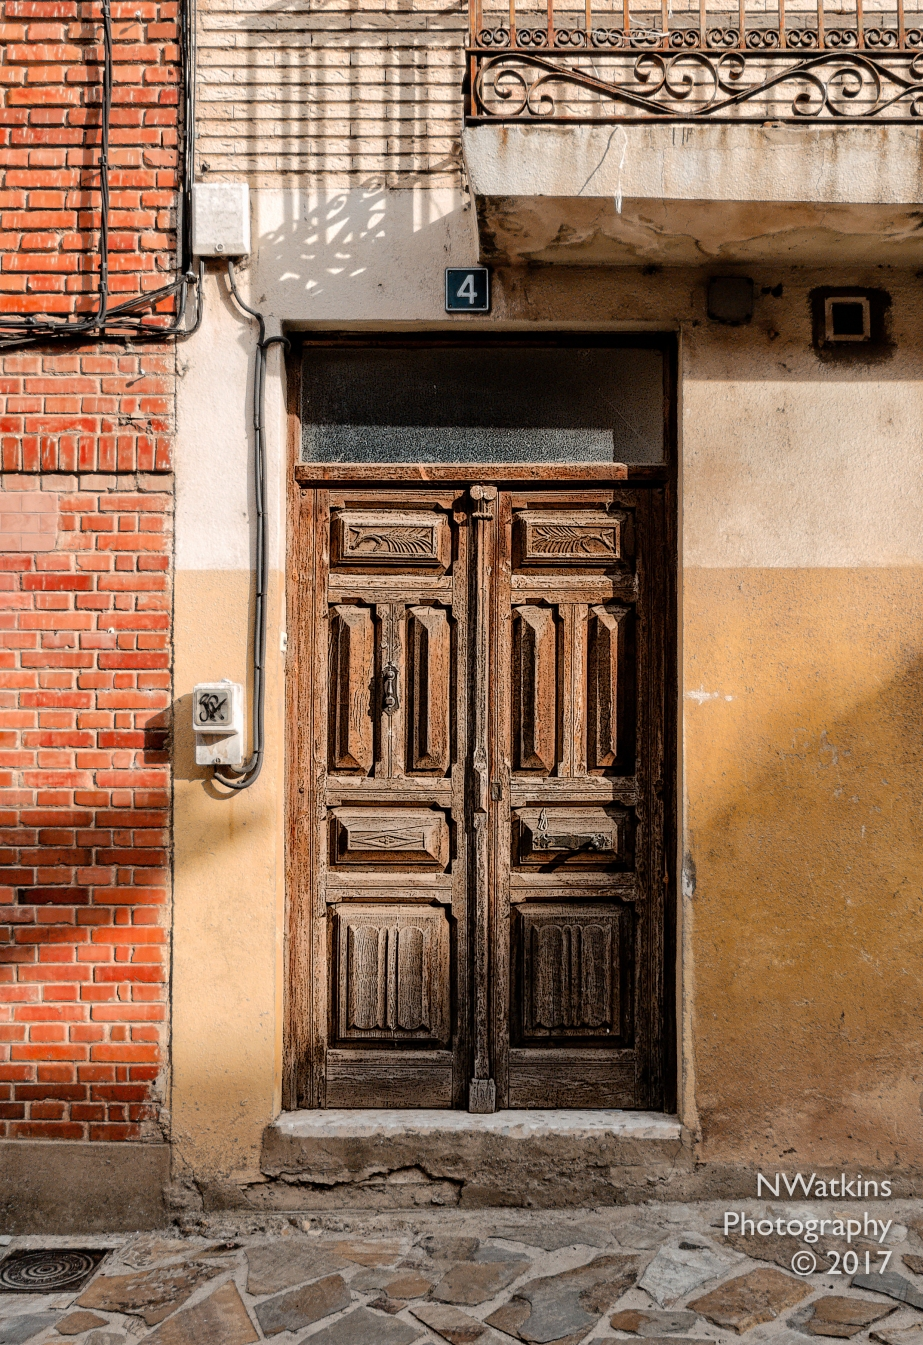 spain-door-no-4-cw